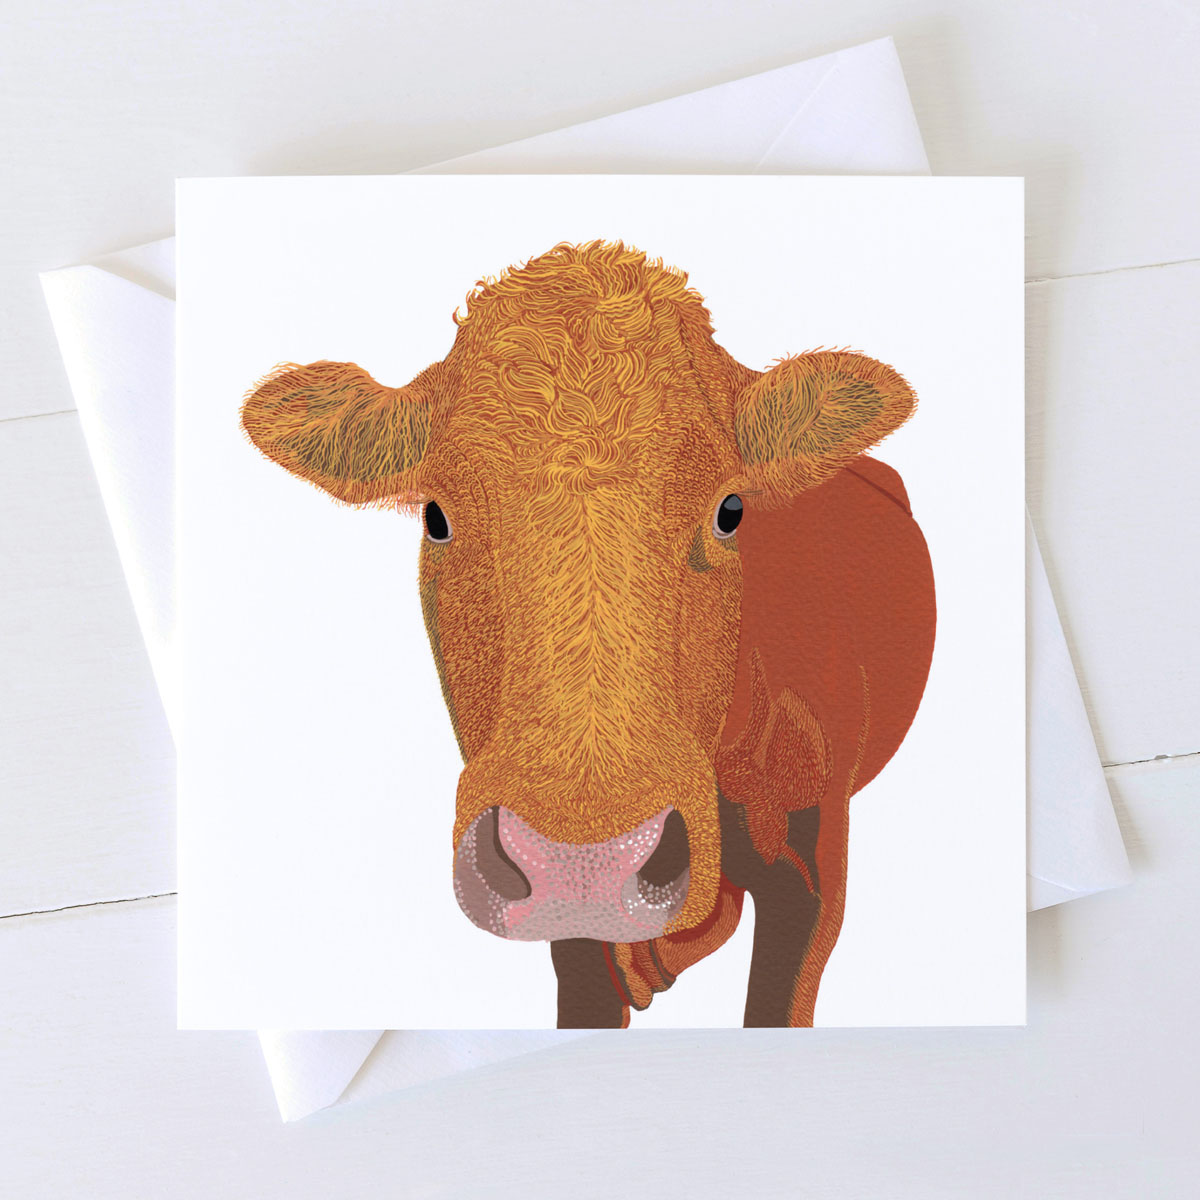 Aberdeen Angus Cow Greeting Card